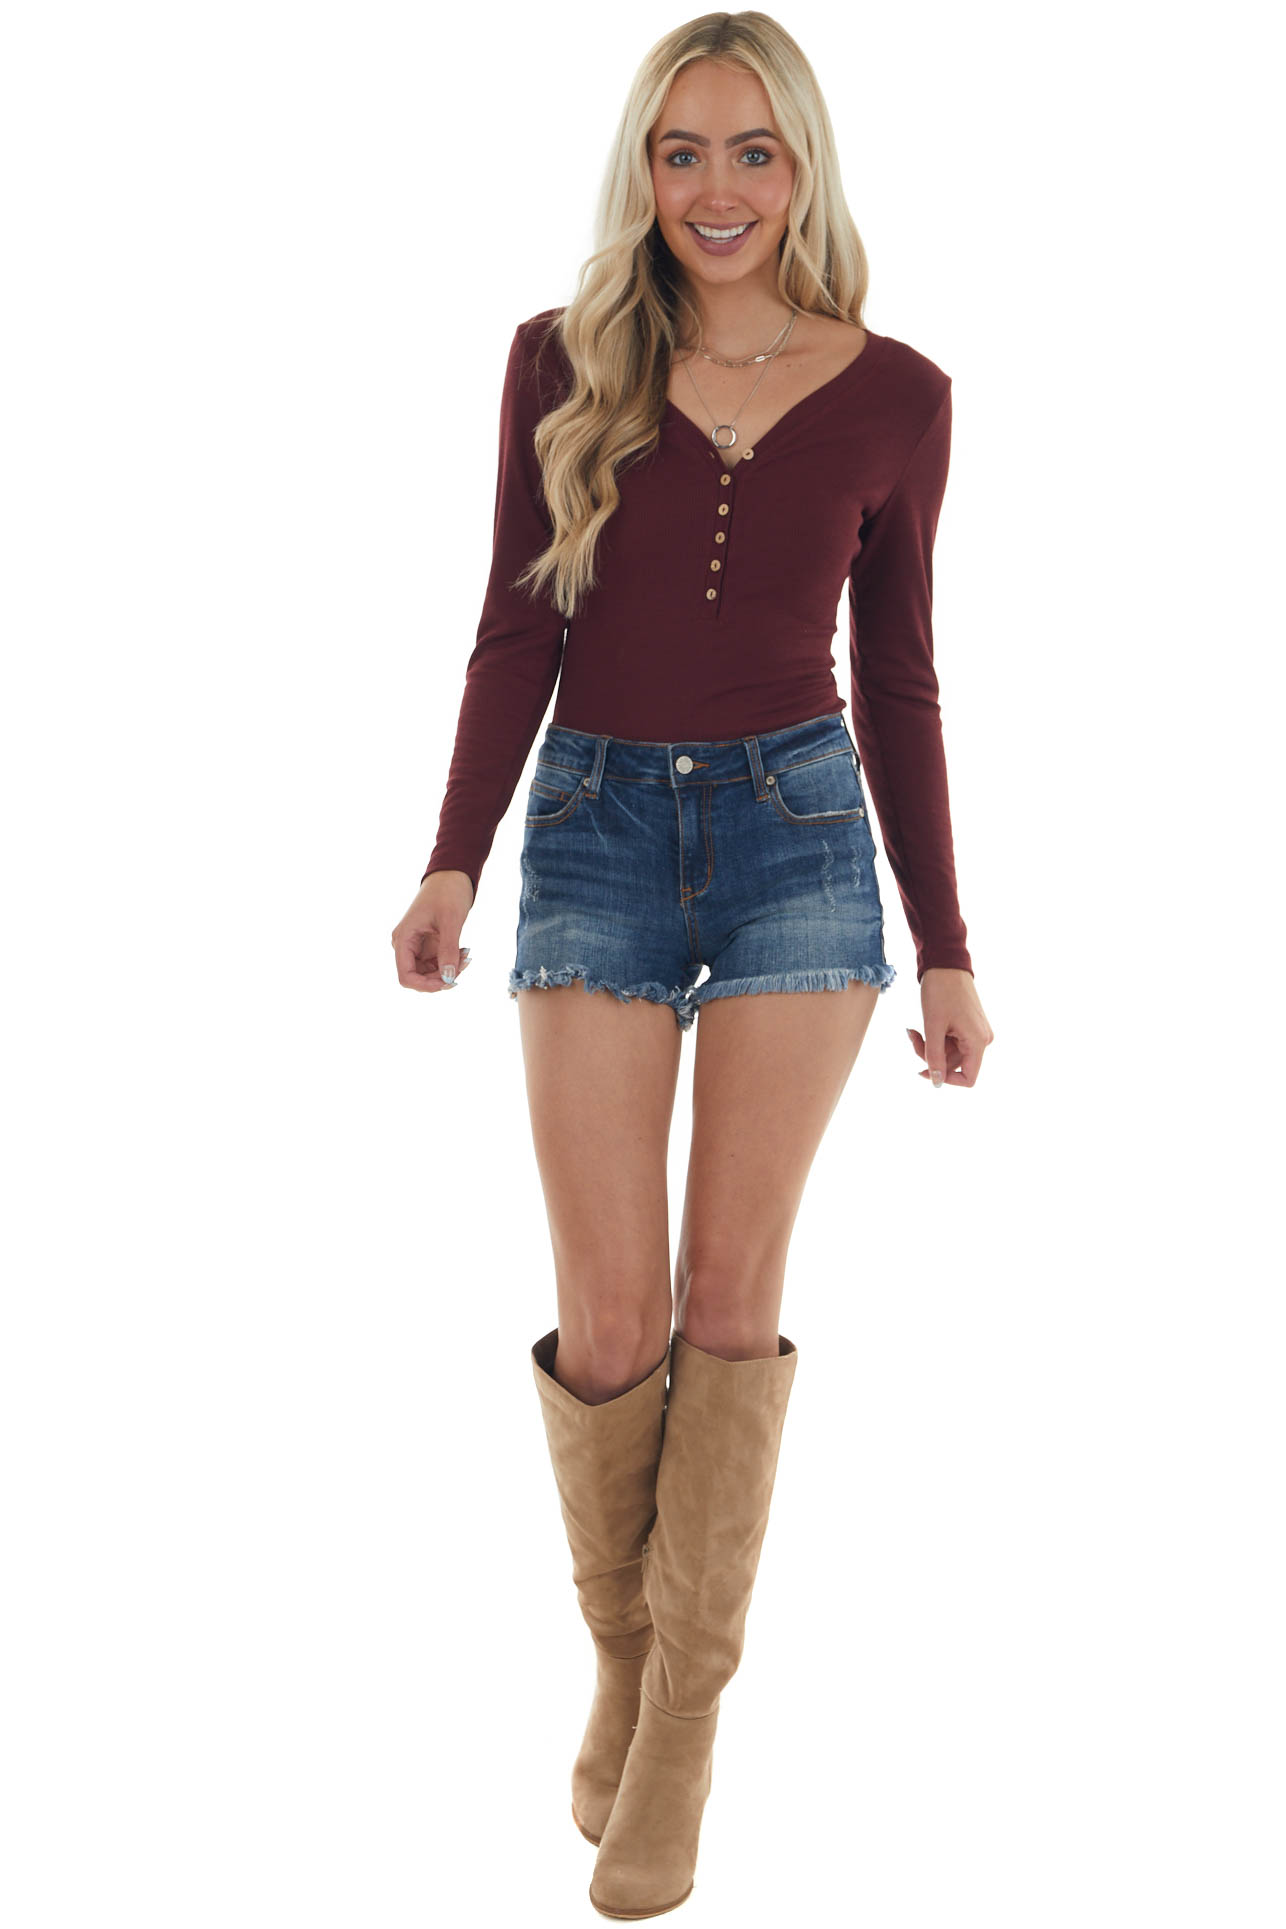 Mahogany Knit Long Sleeve Bodysuit with Button Details